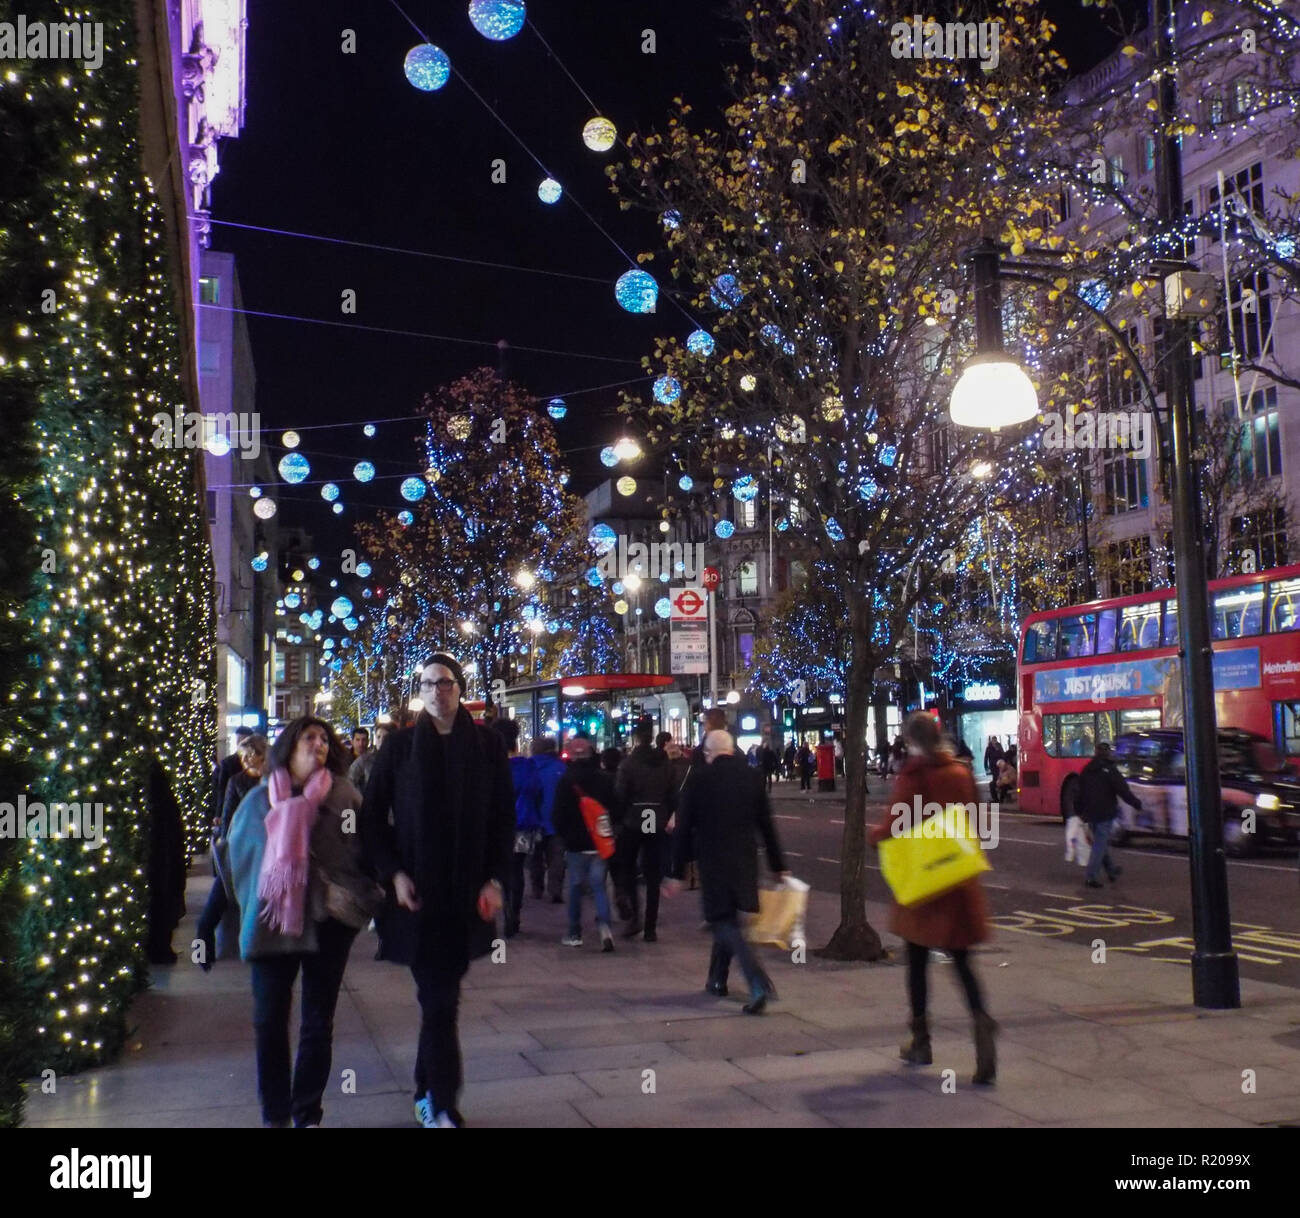 Christmas Lights and shoppers on Oxford St. Central London, England.  night time, horizontal. Dec.2015 - Stock Image